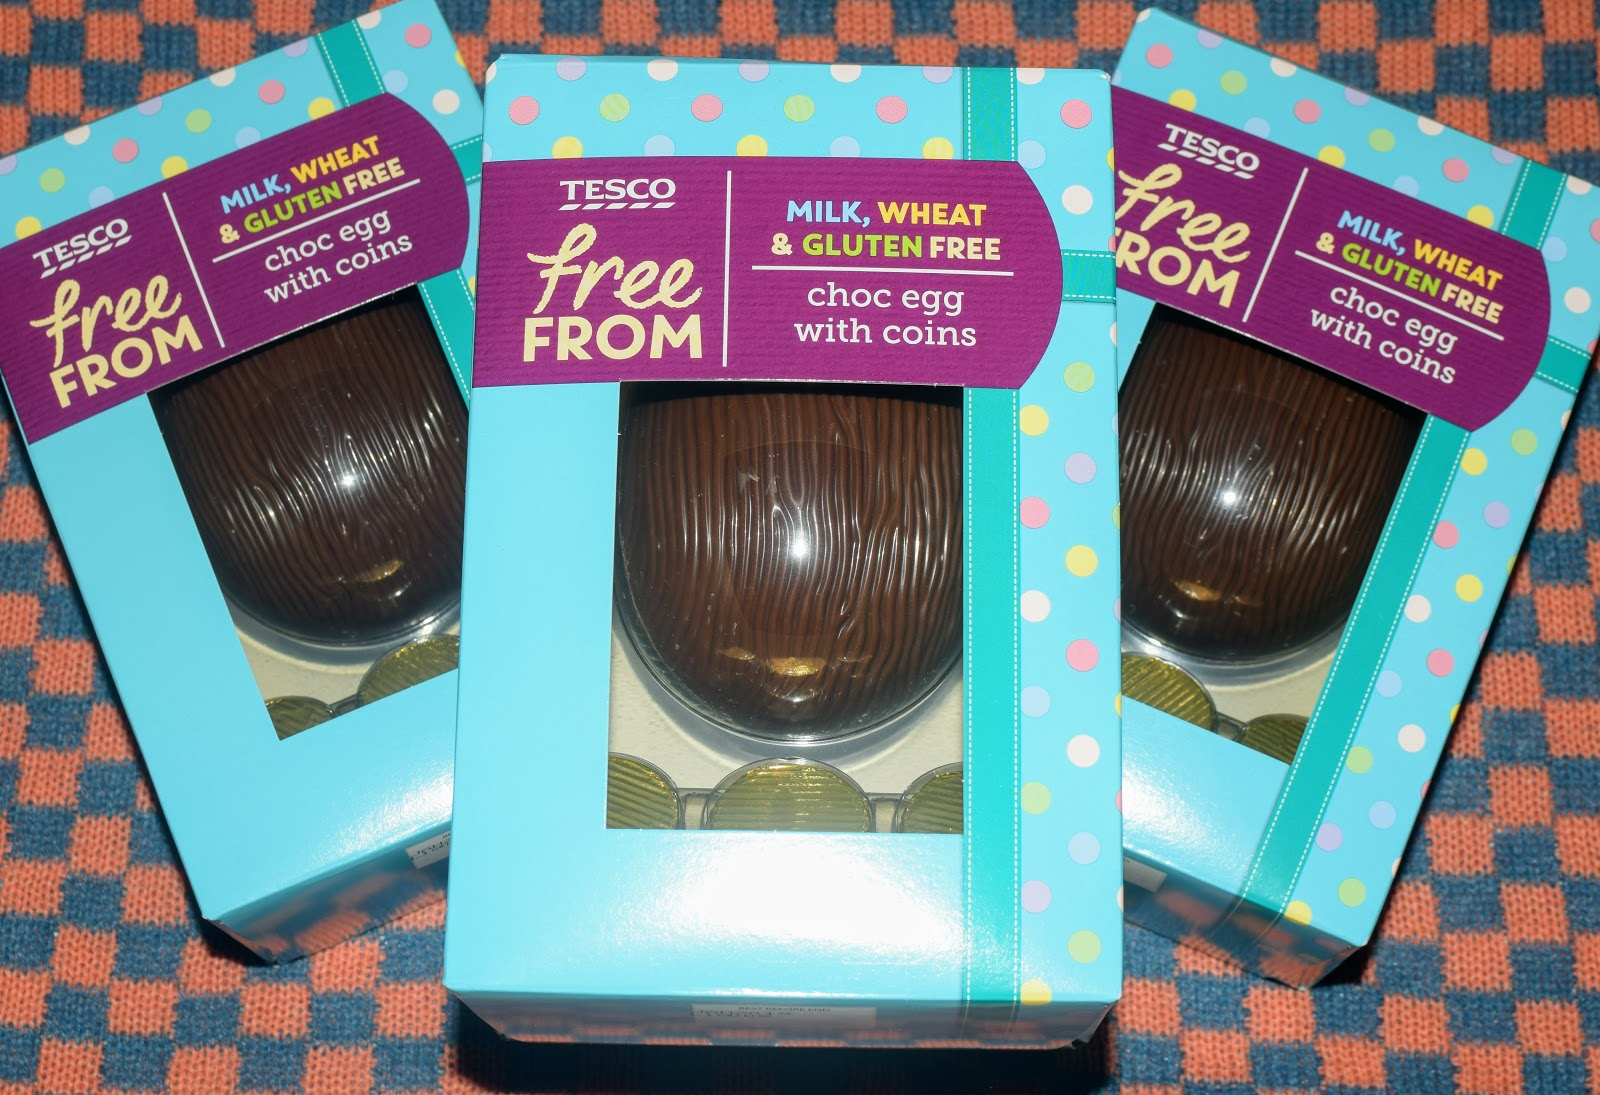 , Food:  Win a Tesco Free From Choc Egg With Coins